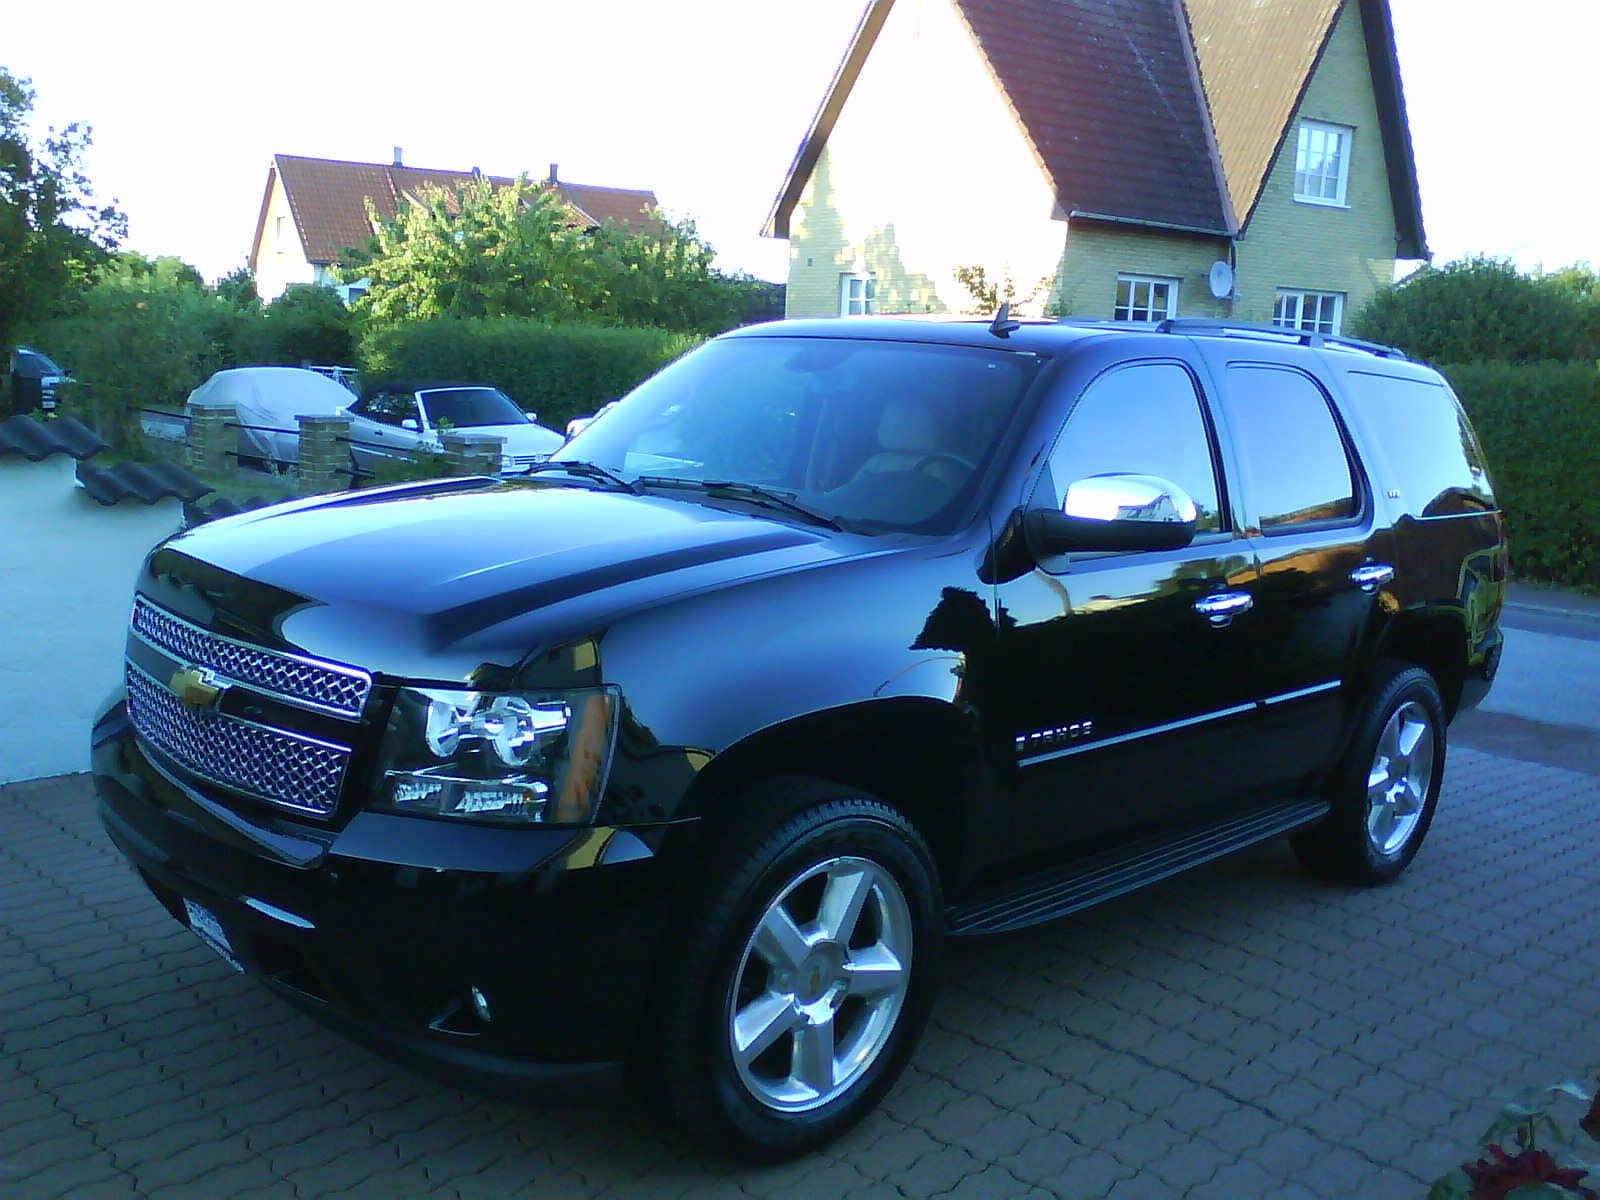 Tuning cars and News  CHEVROLET TAHOE Custom